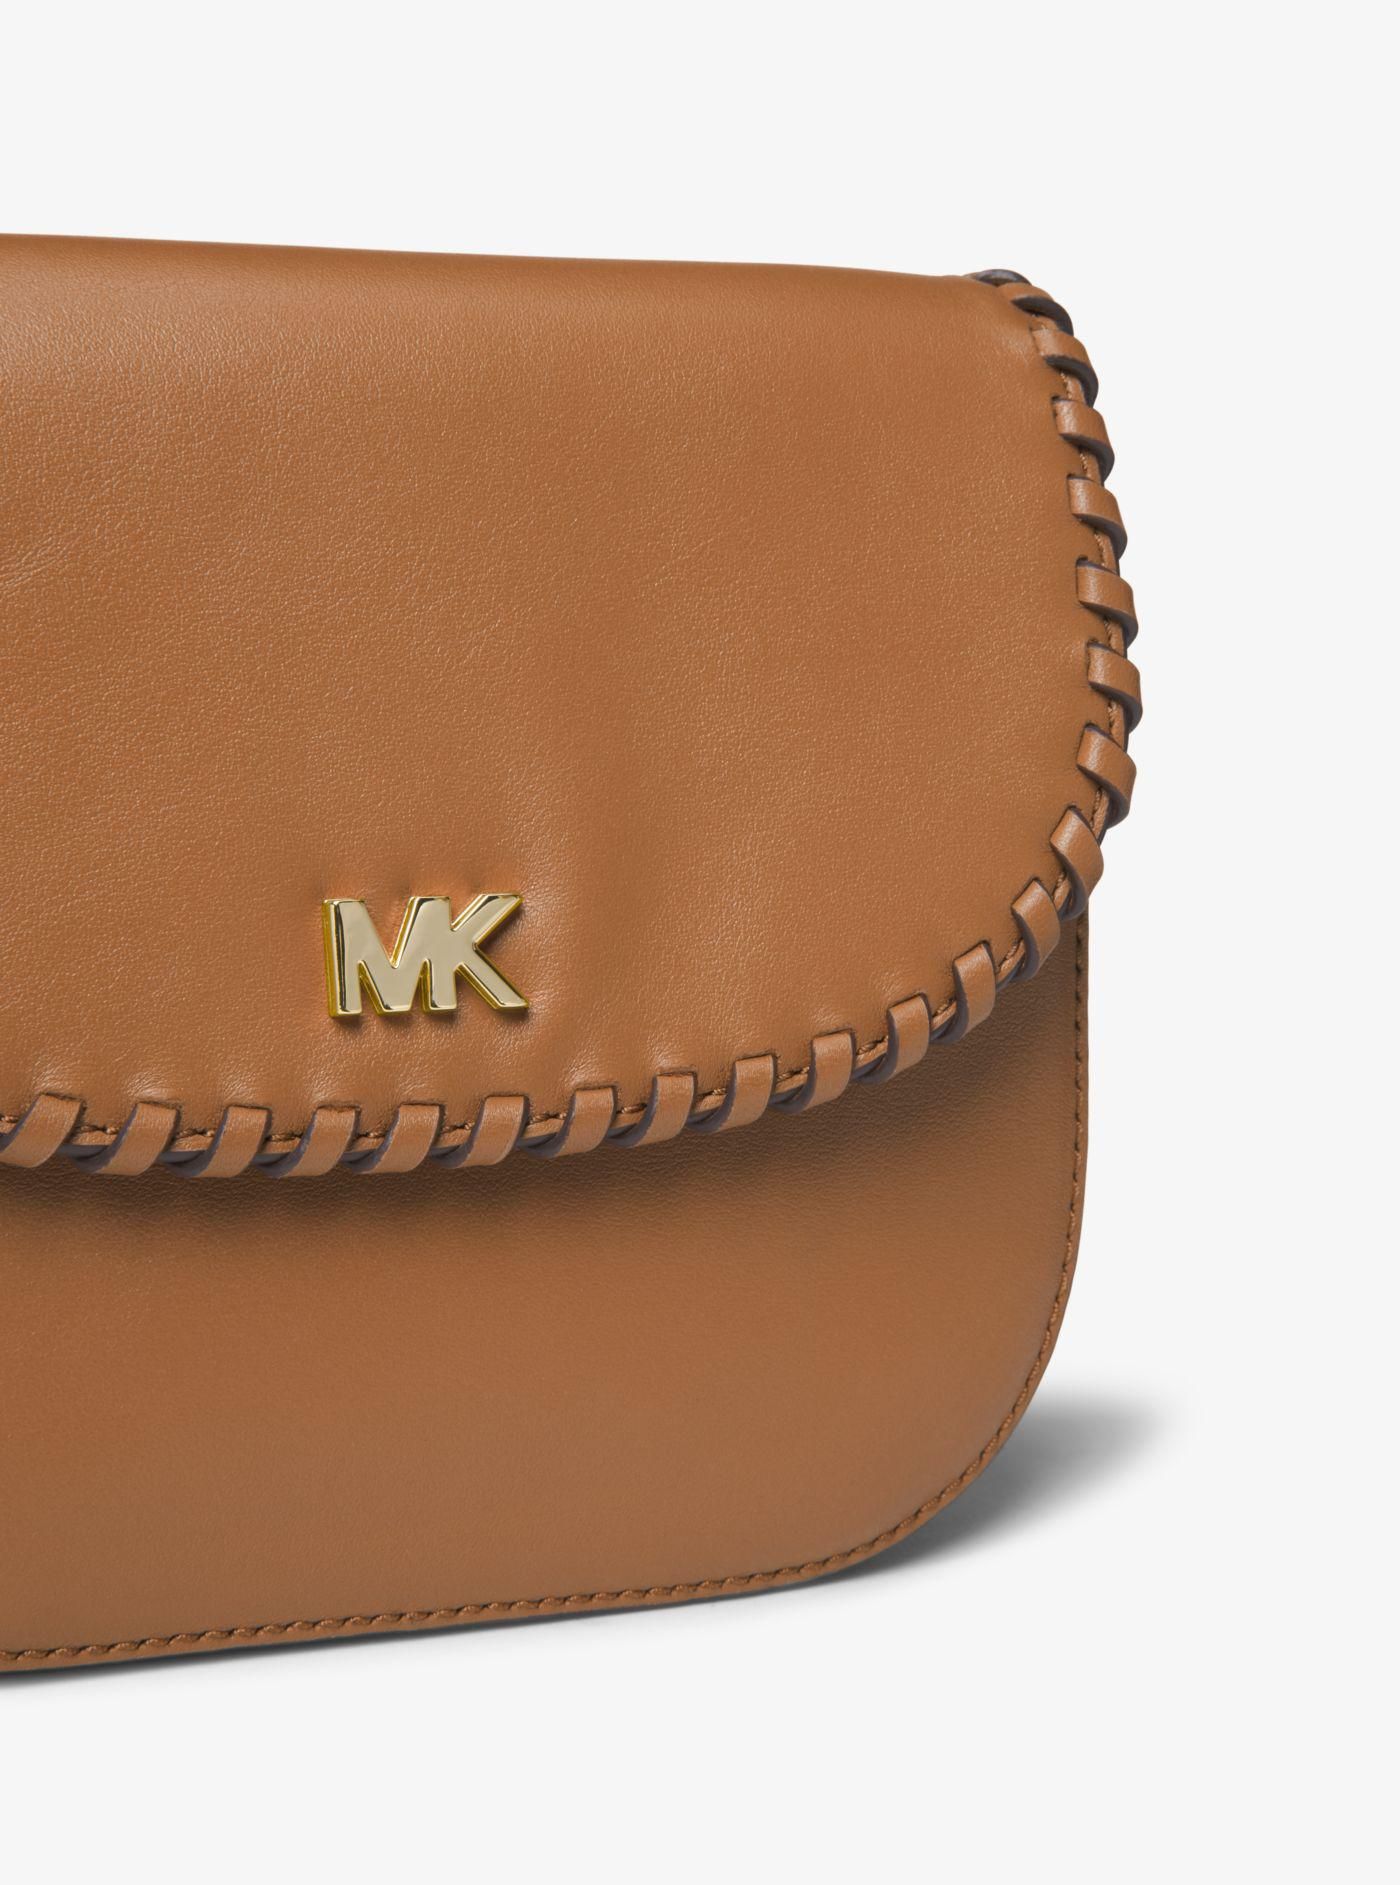 a9d25895c793 Michael Kors Whipstitched Leather Saddle Bag in Brown - Lyst